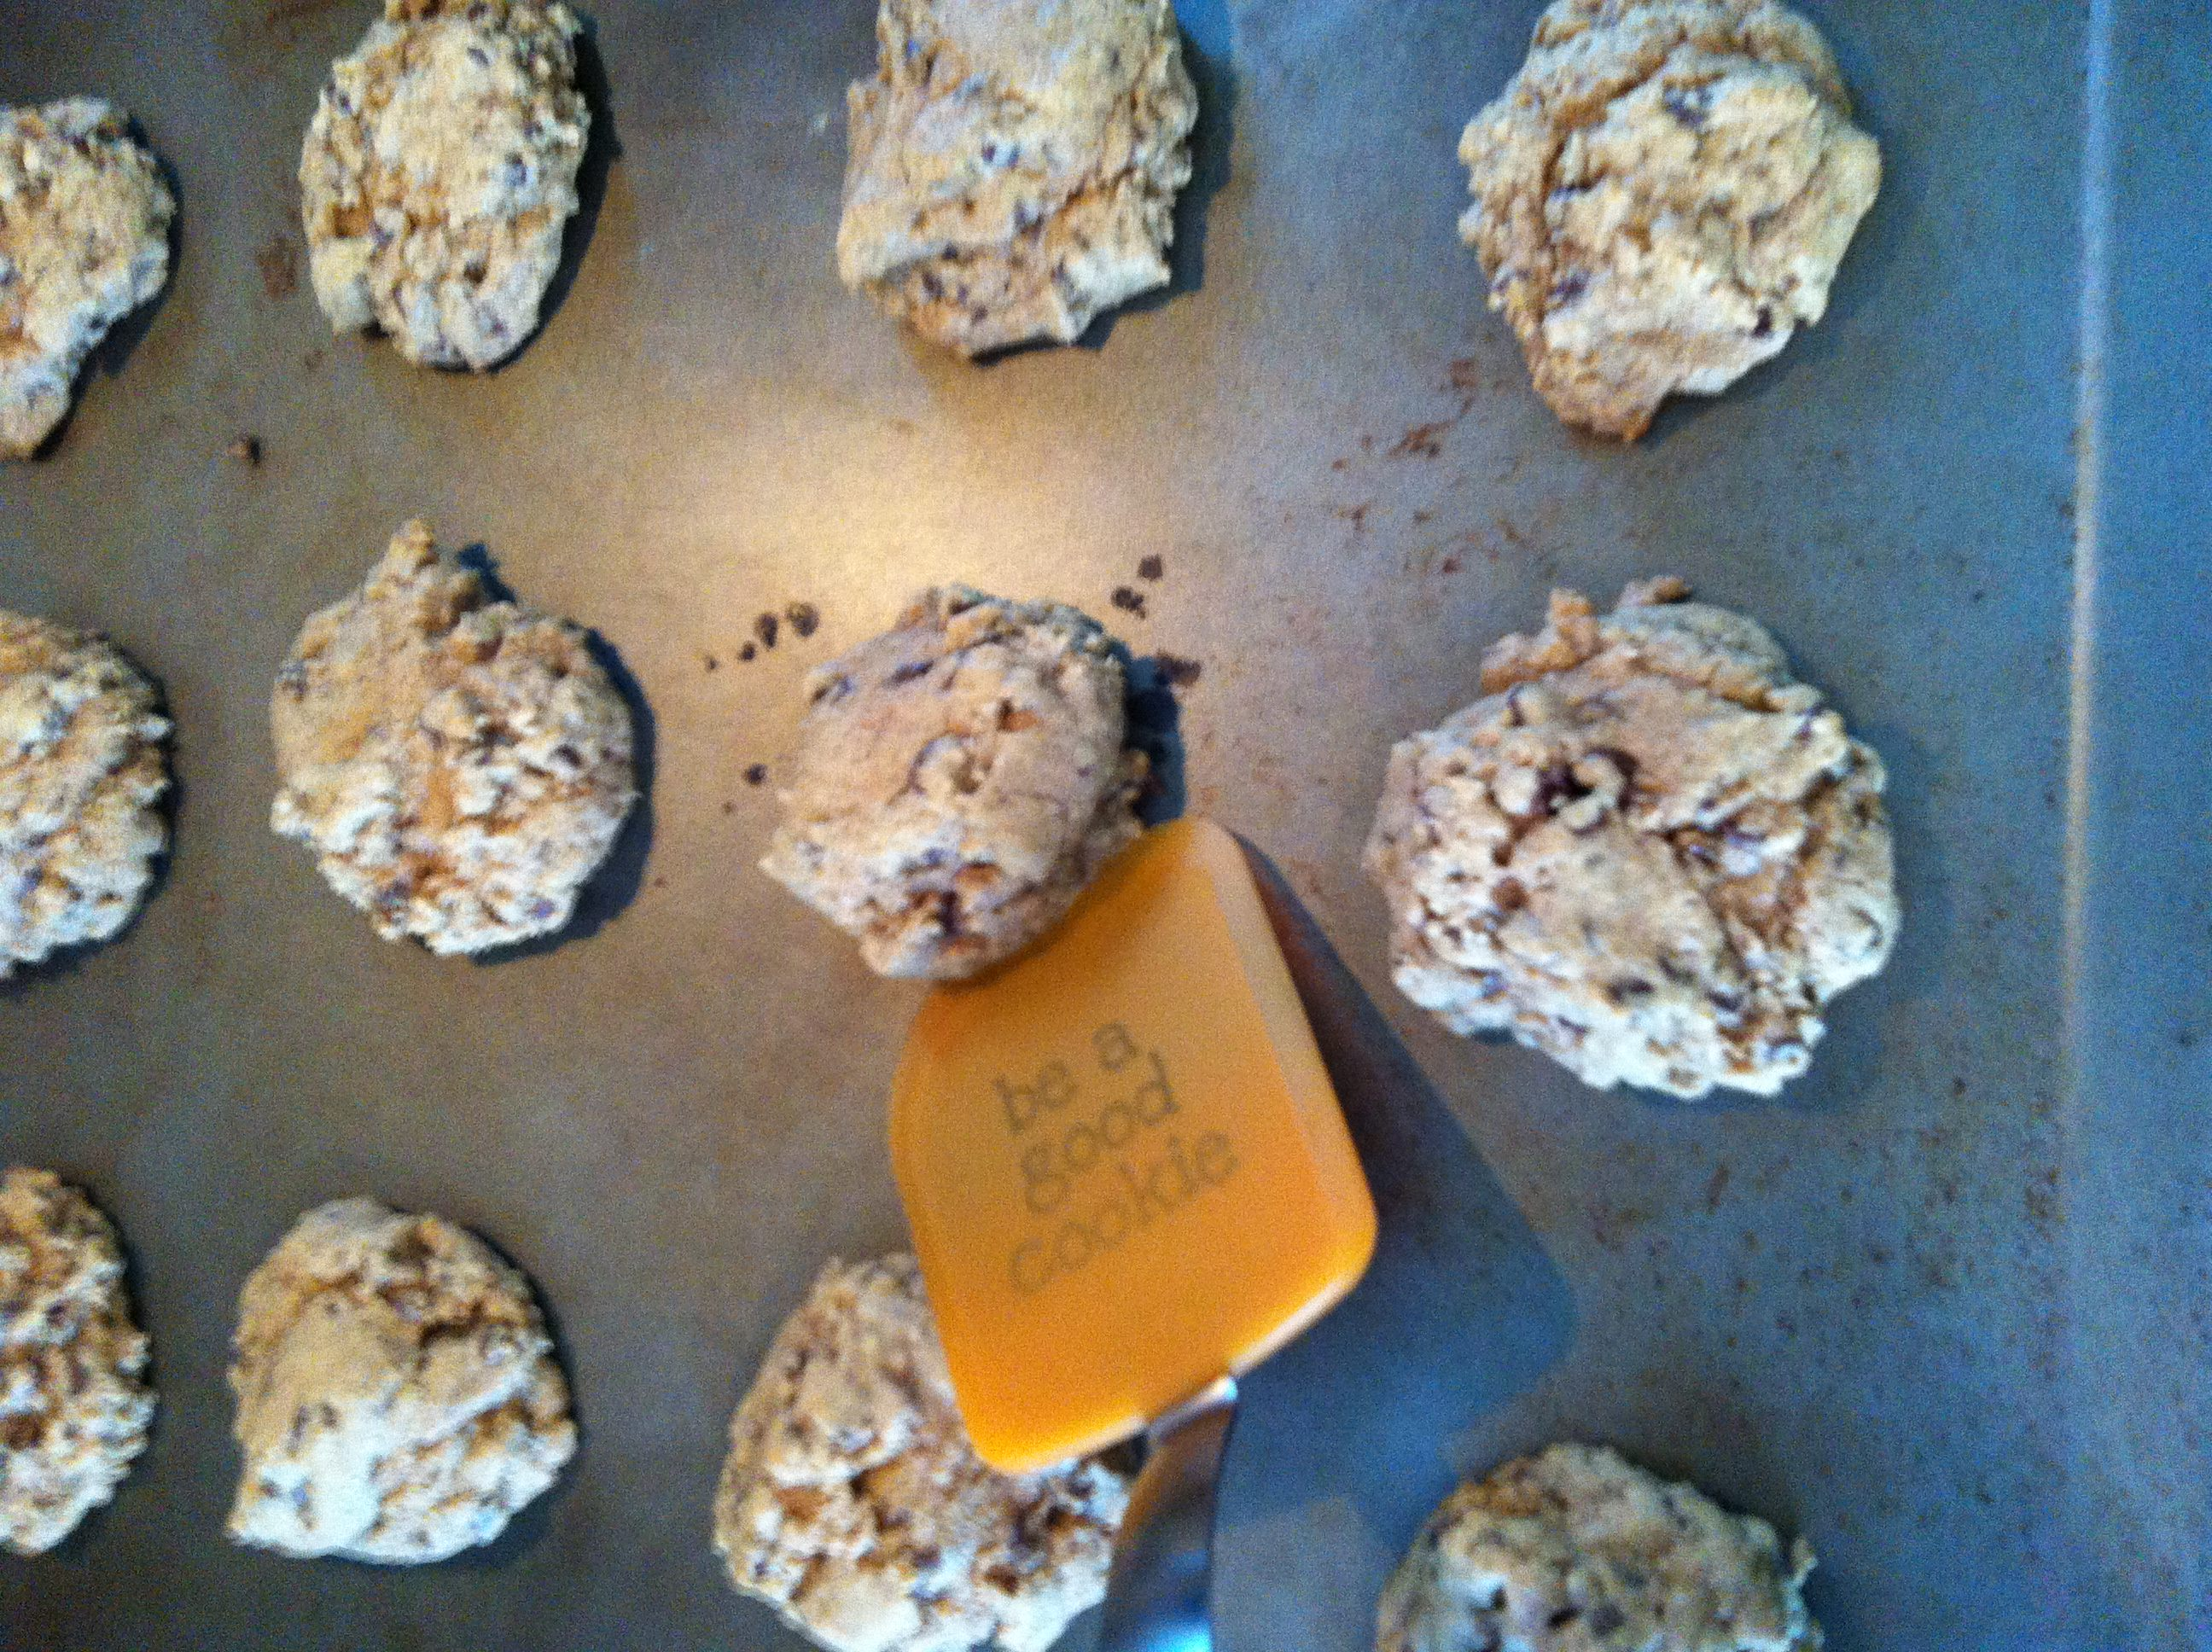 Pumpkin Spiced Chocolate Chip Cookies ready to bake